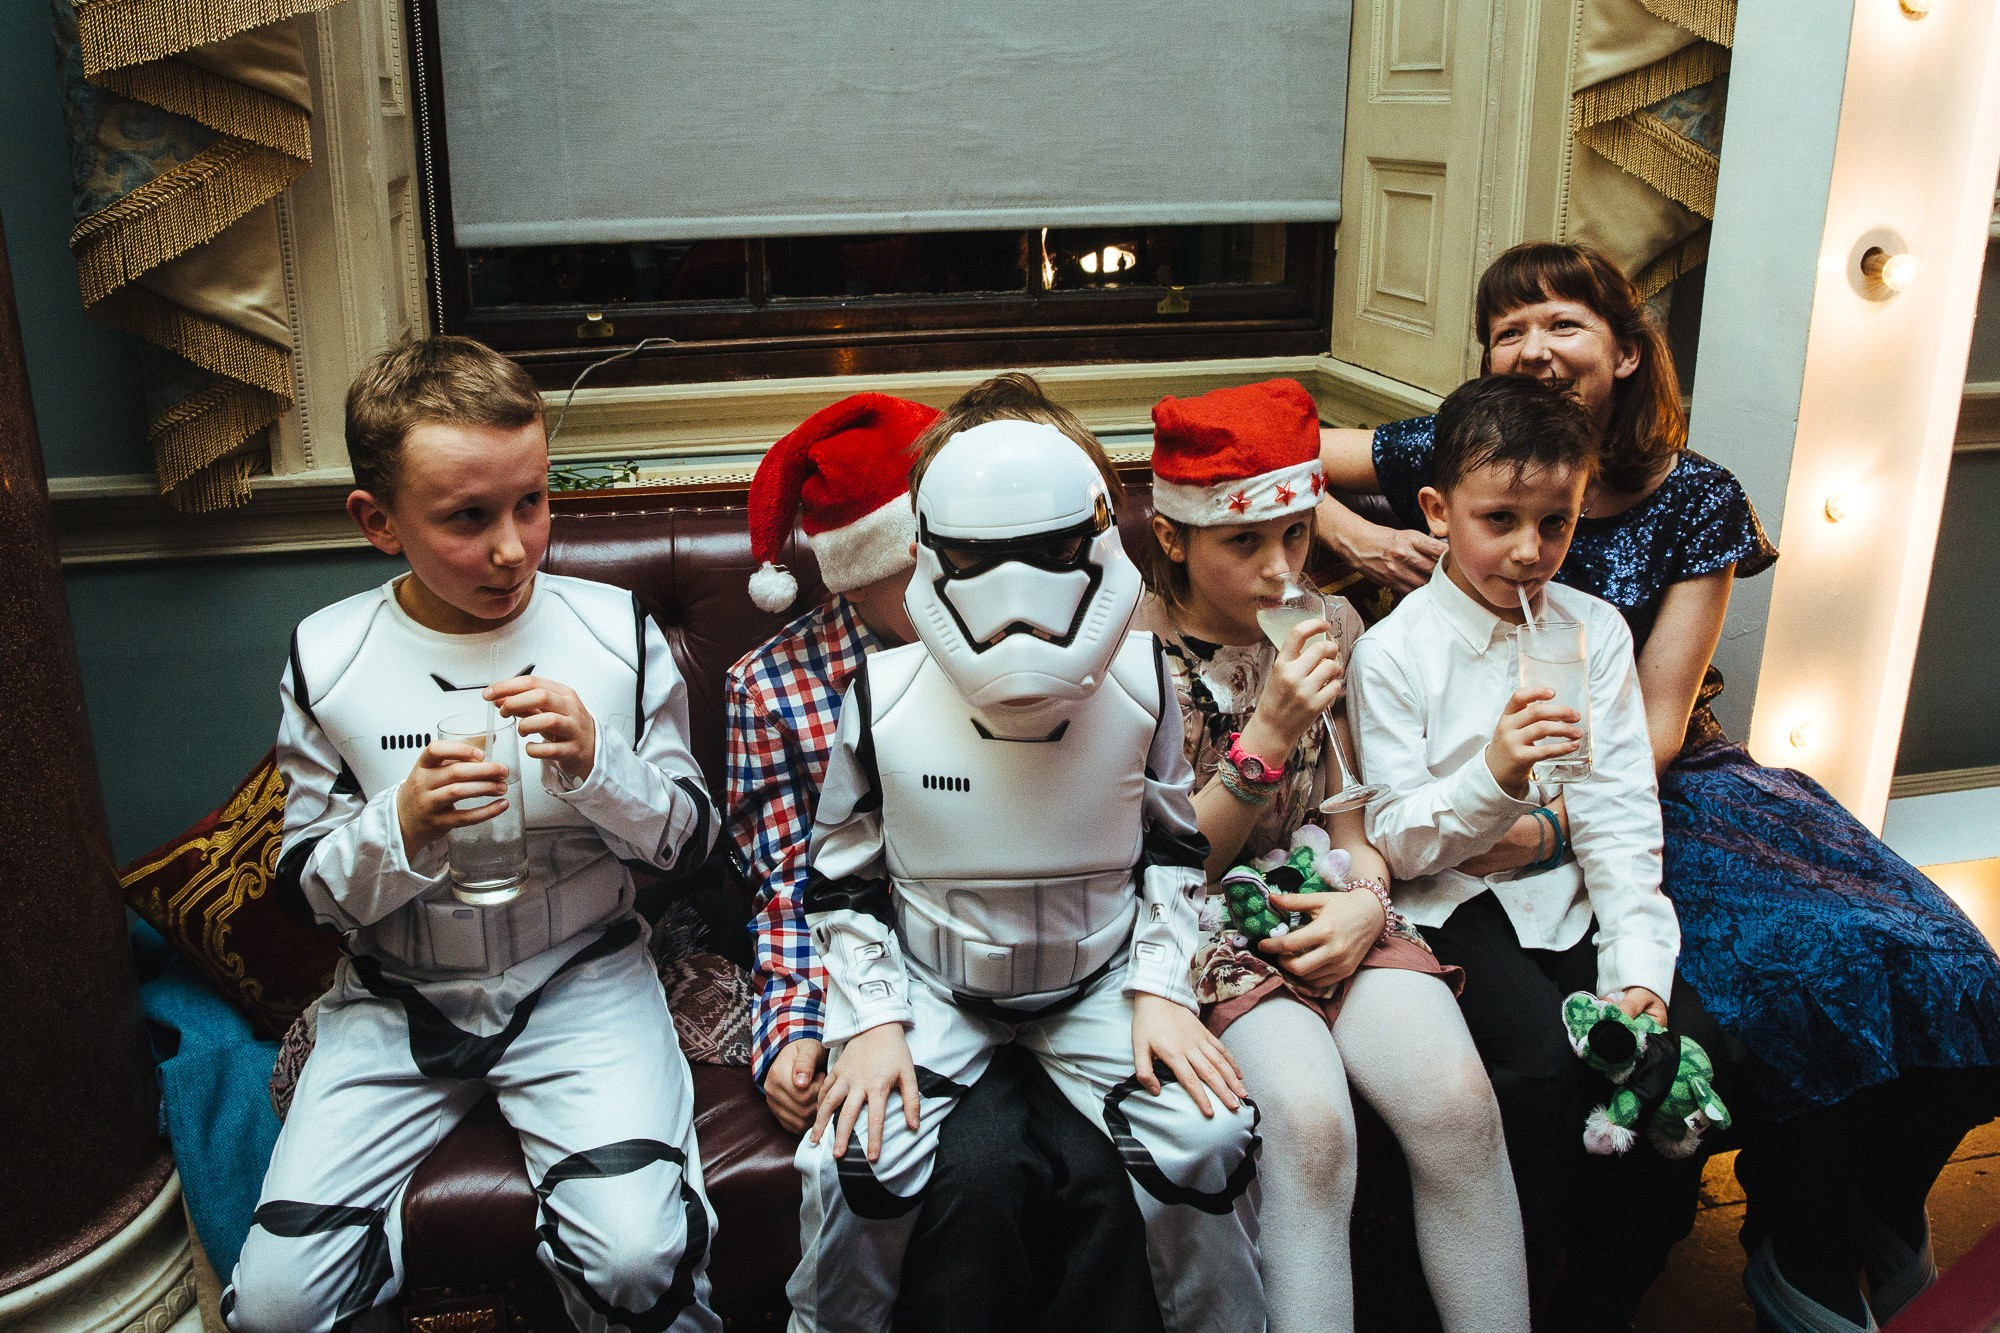 stormtroopers at a Christmas wedding